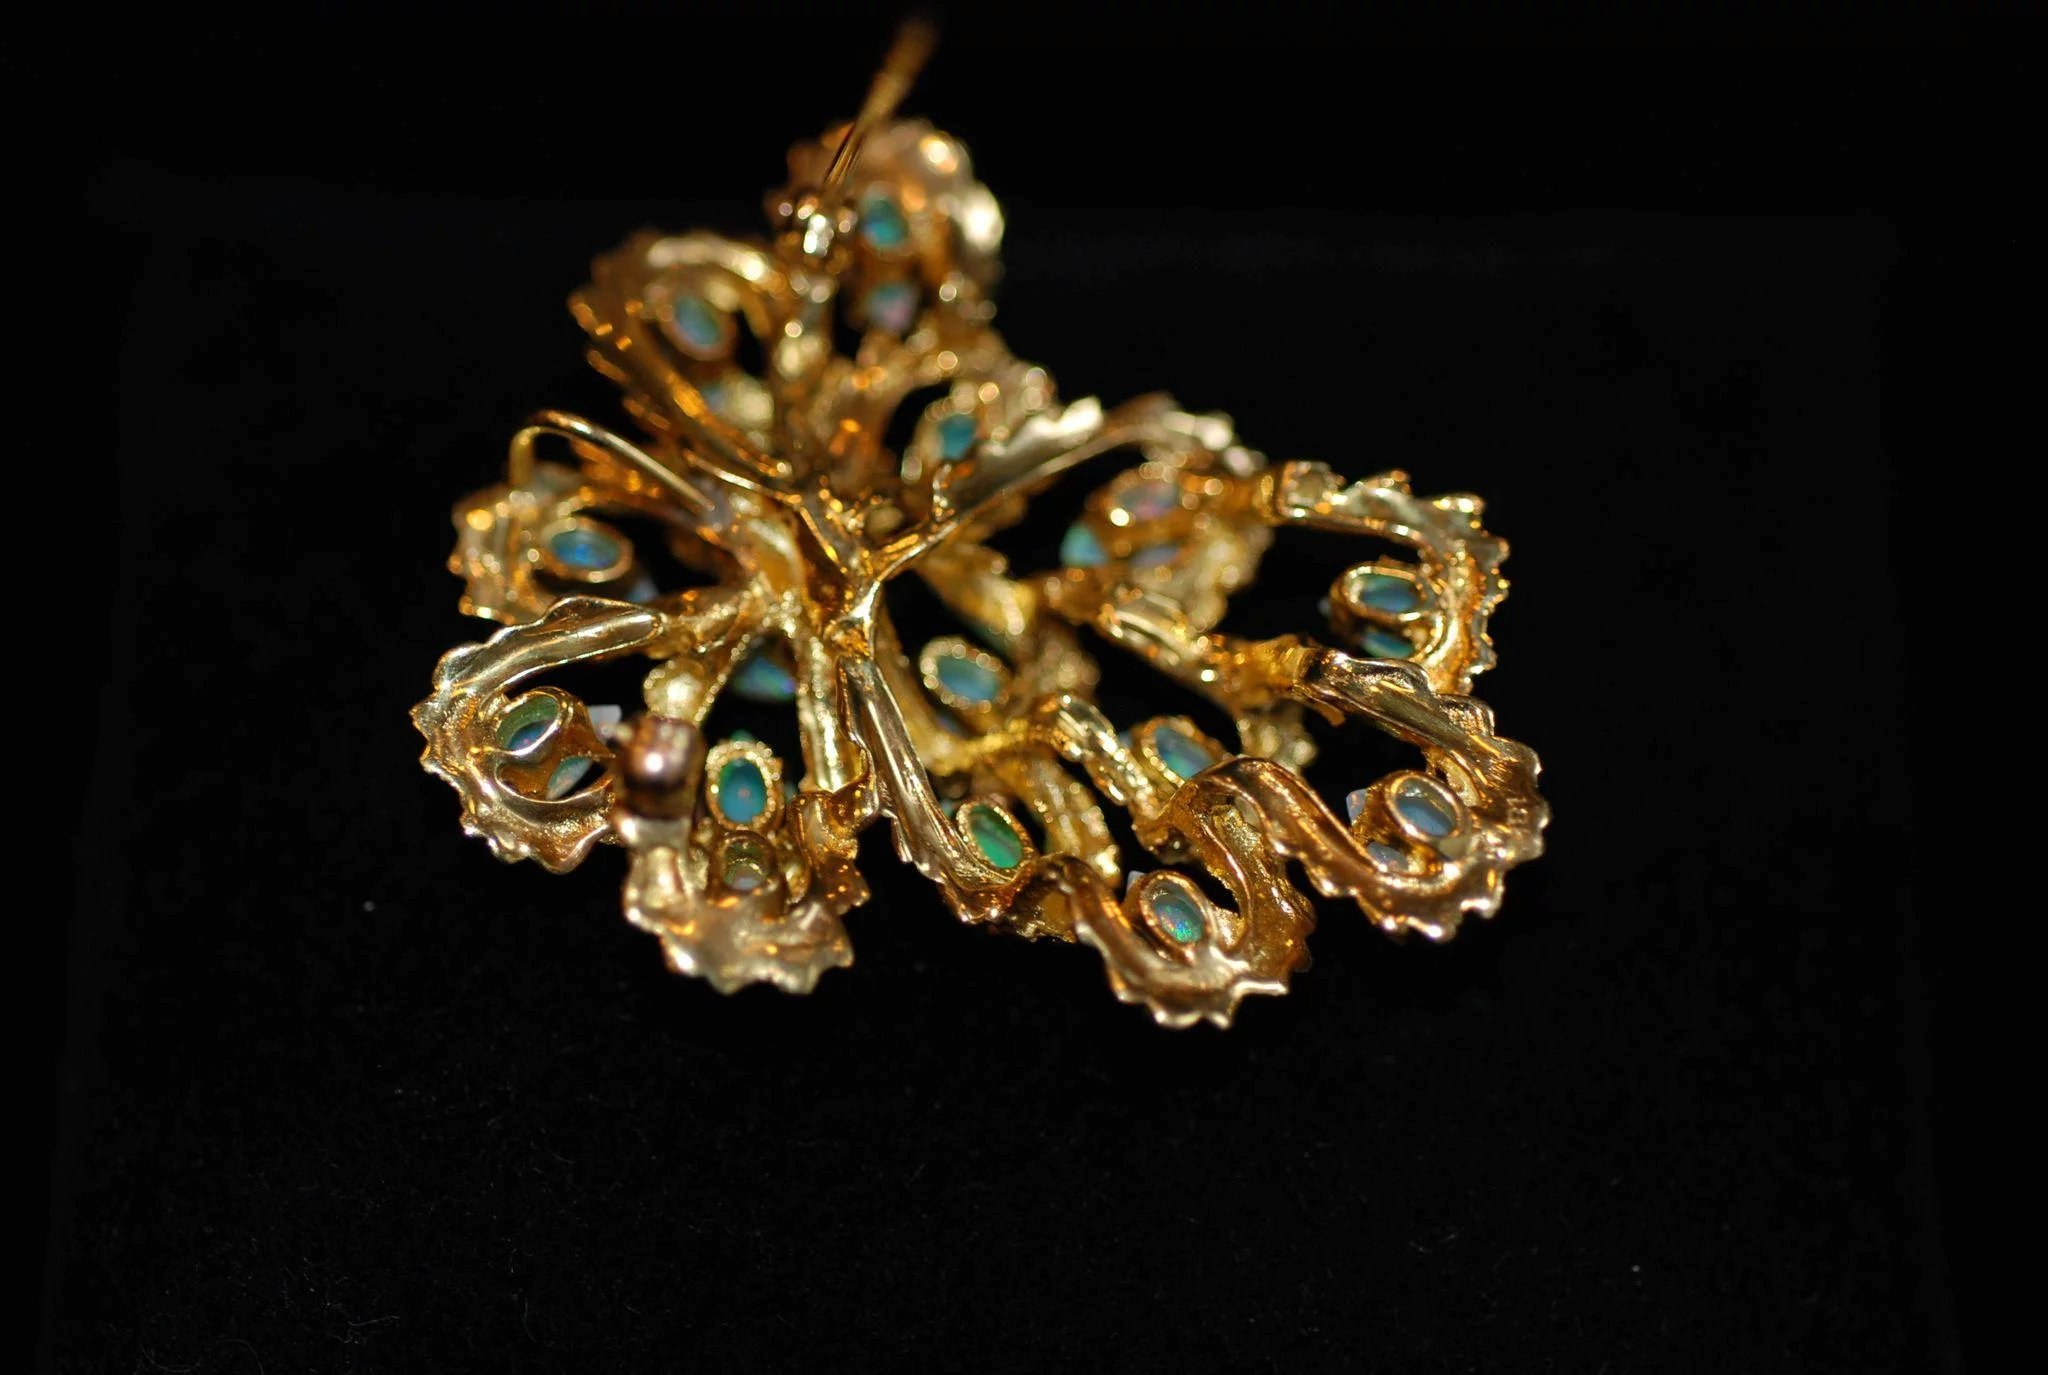 opal nouveau click photo and art diamond brooch to enlarge fabulous french